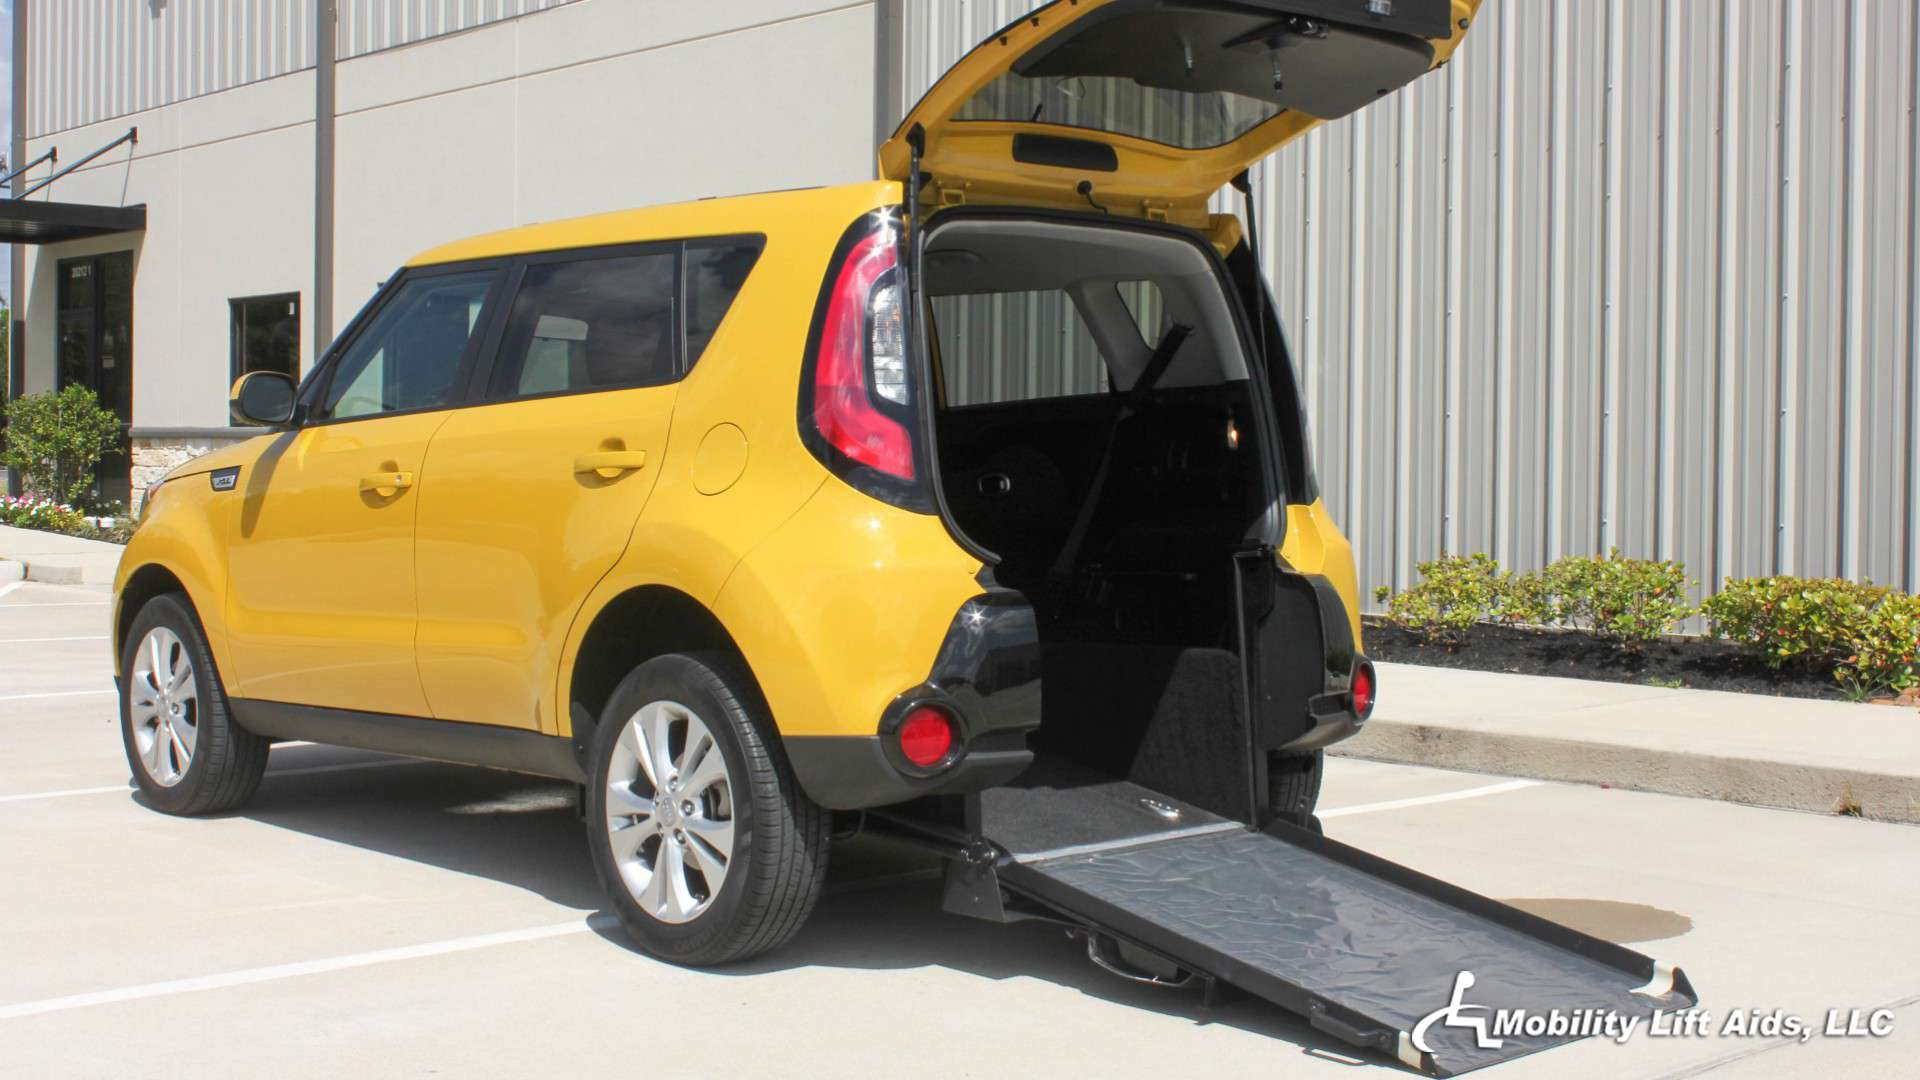 Wheelchair Van For Sale 2016 Kia Soul Stock 1000: wheelchair lift motor